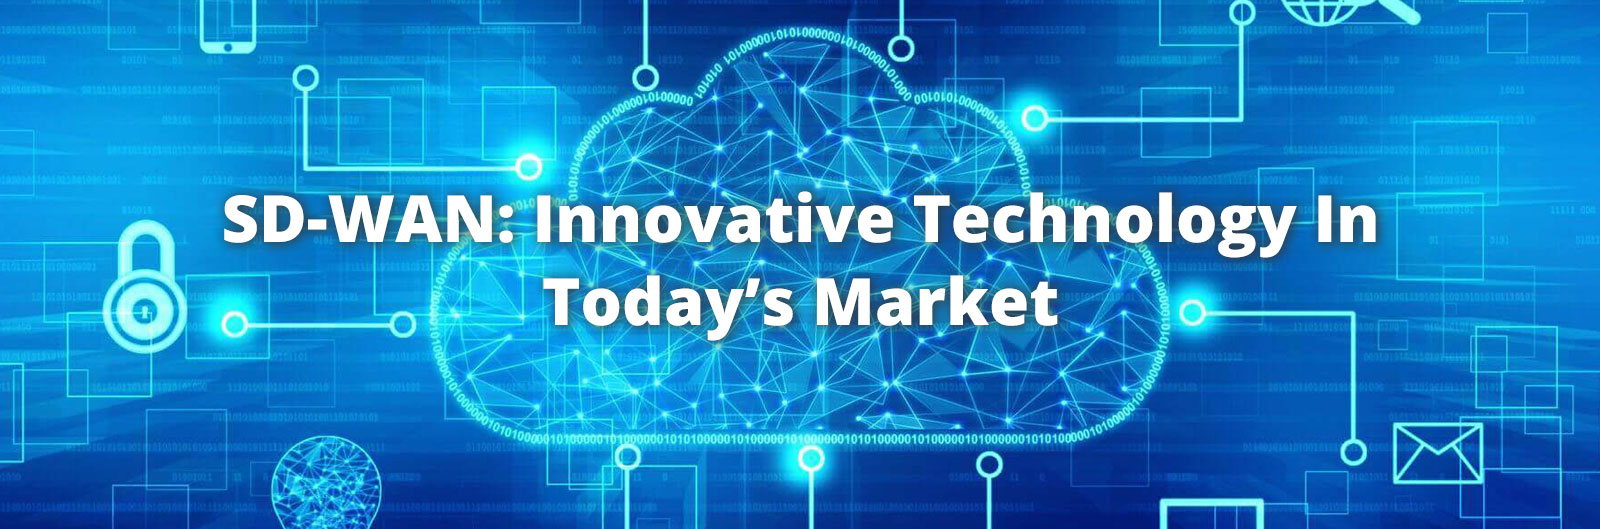 text on blue background - SD-WAN: Innovative Technology in Today's Market